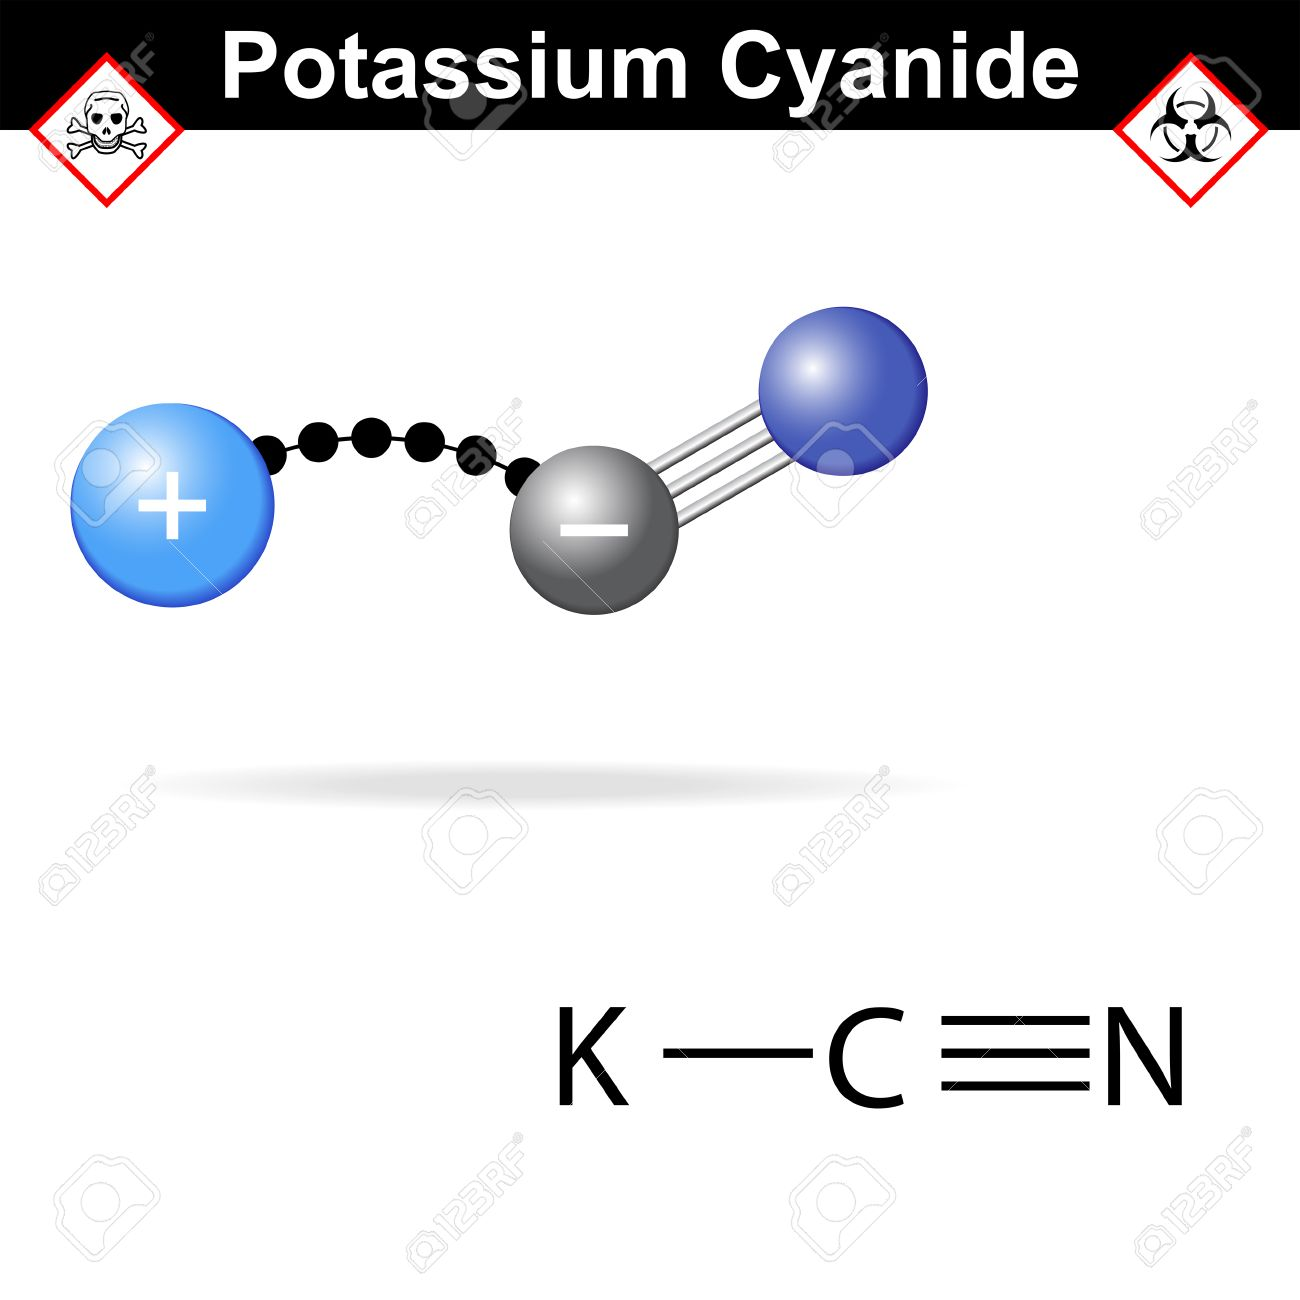 Potassium cyanide molecule, fatal poison structure and model, 2d & 3d vector isolated on white background - 47310467